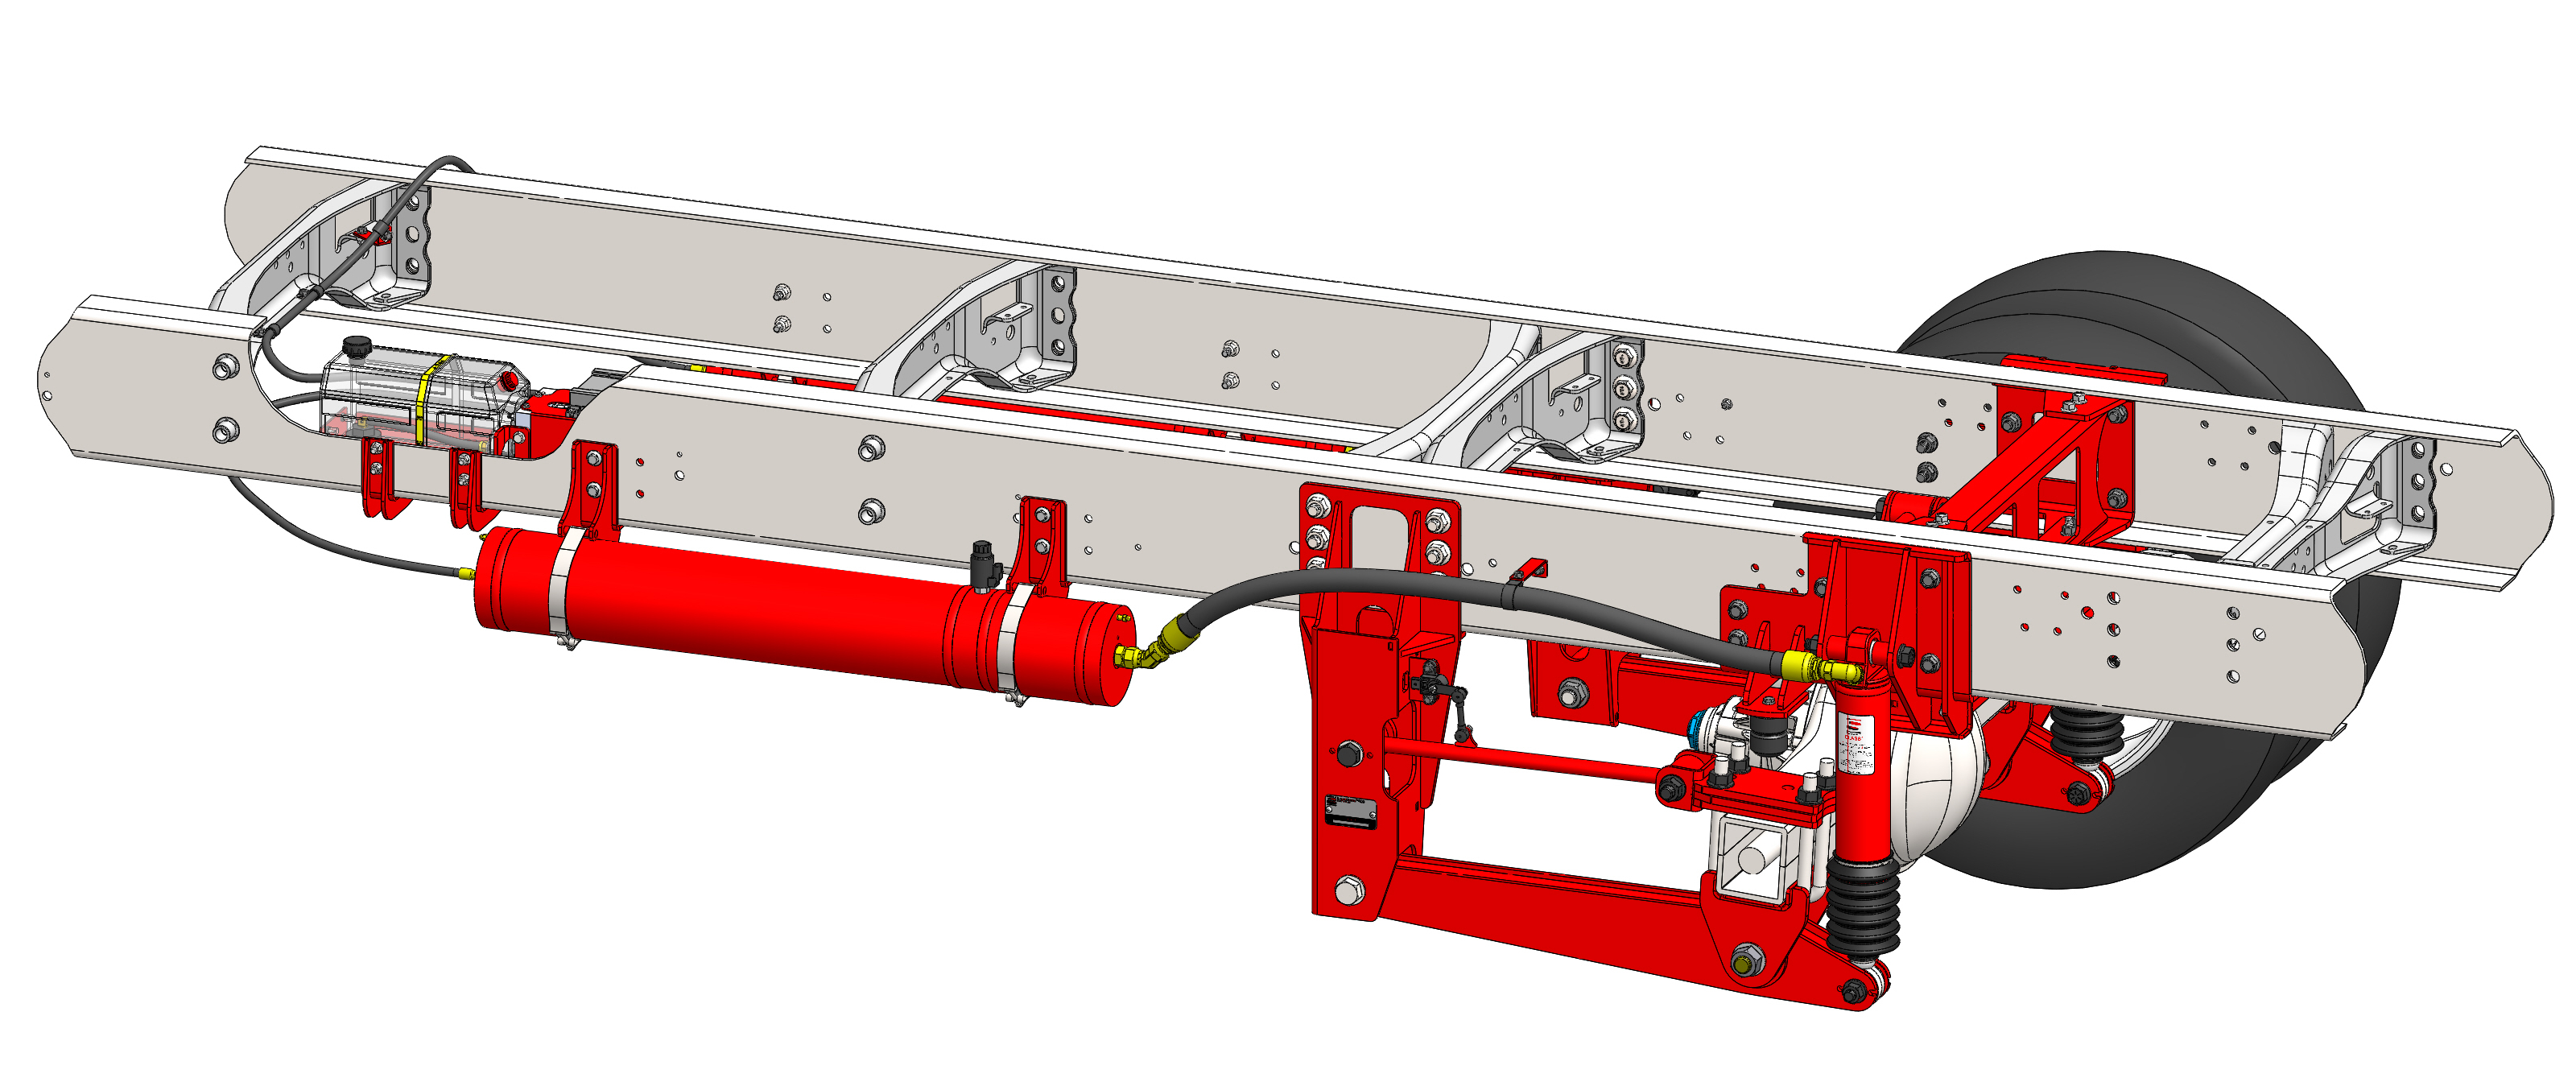 F-650 Straight Rail Suspension System for emergency vehicles.